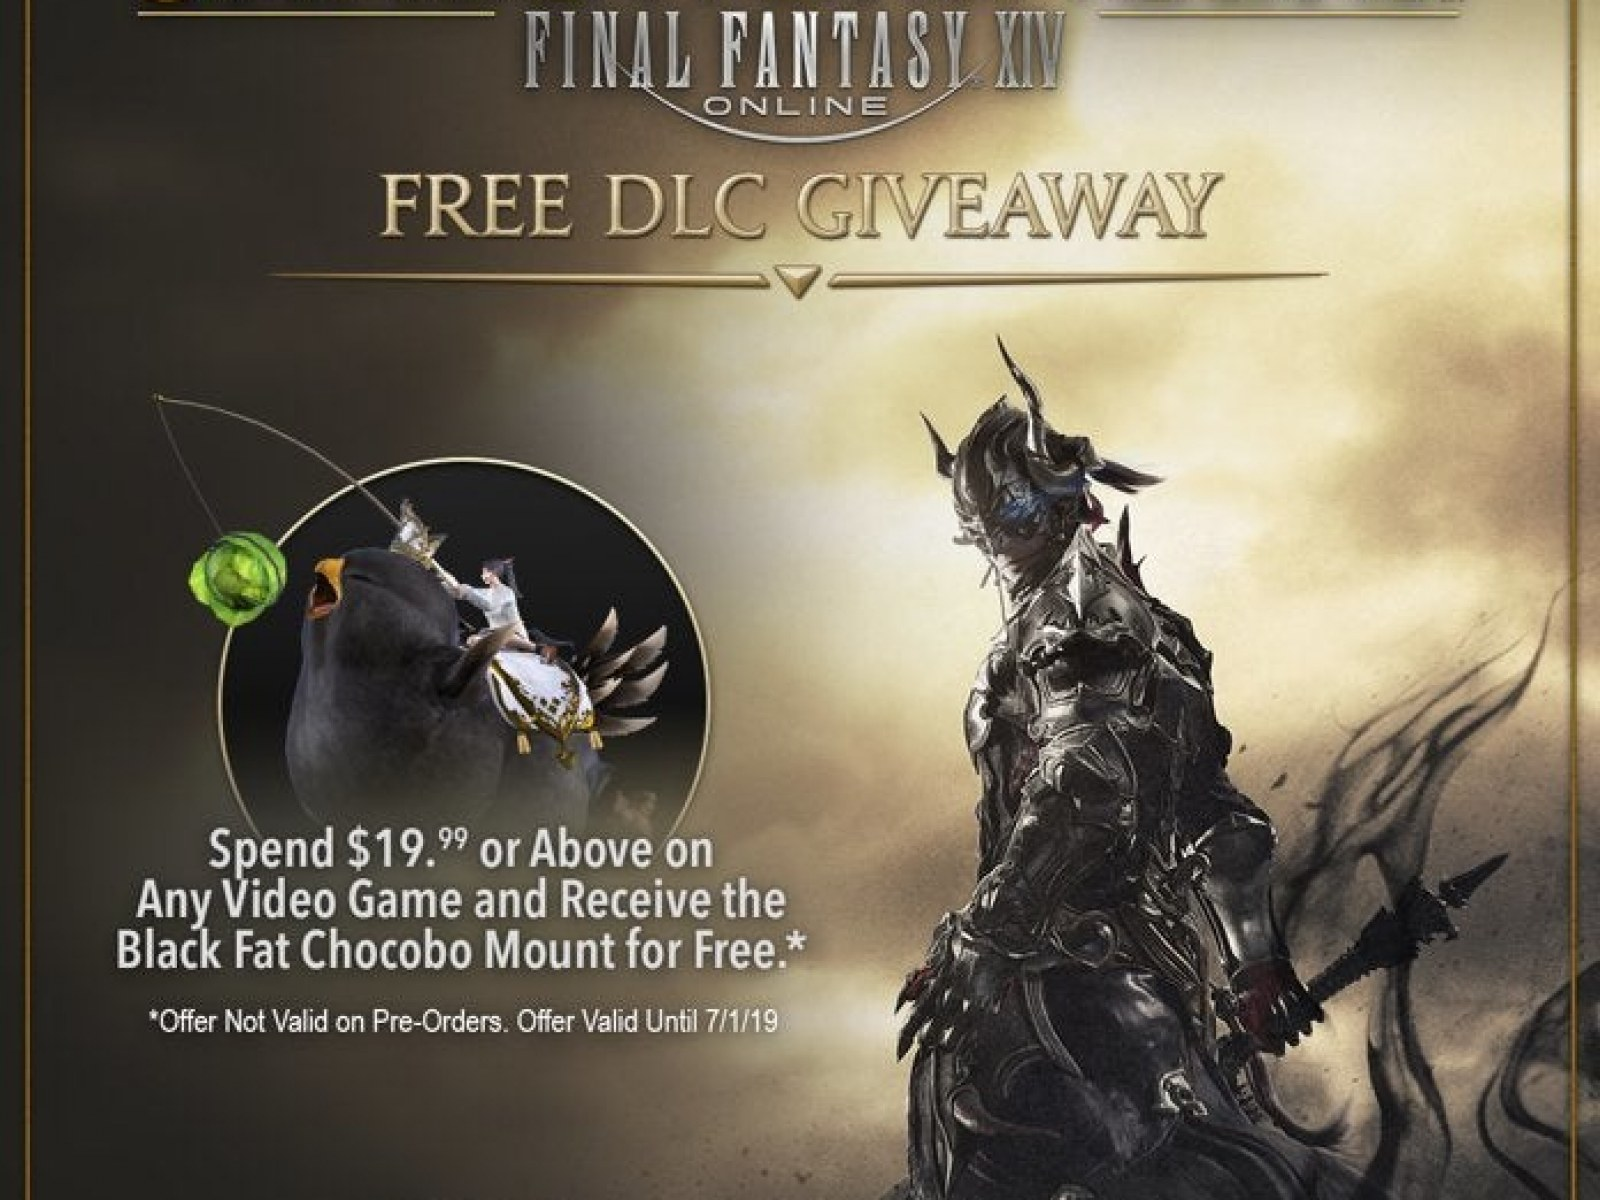 Amazon Offers 'FFXIV' Black Fat Chocobo DLC for Free During